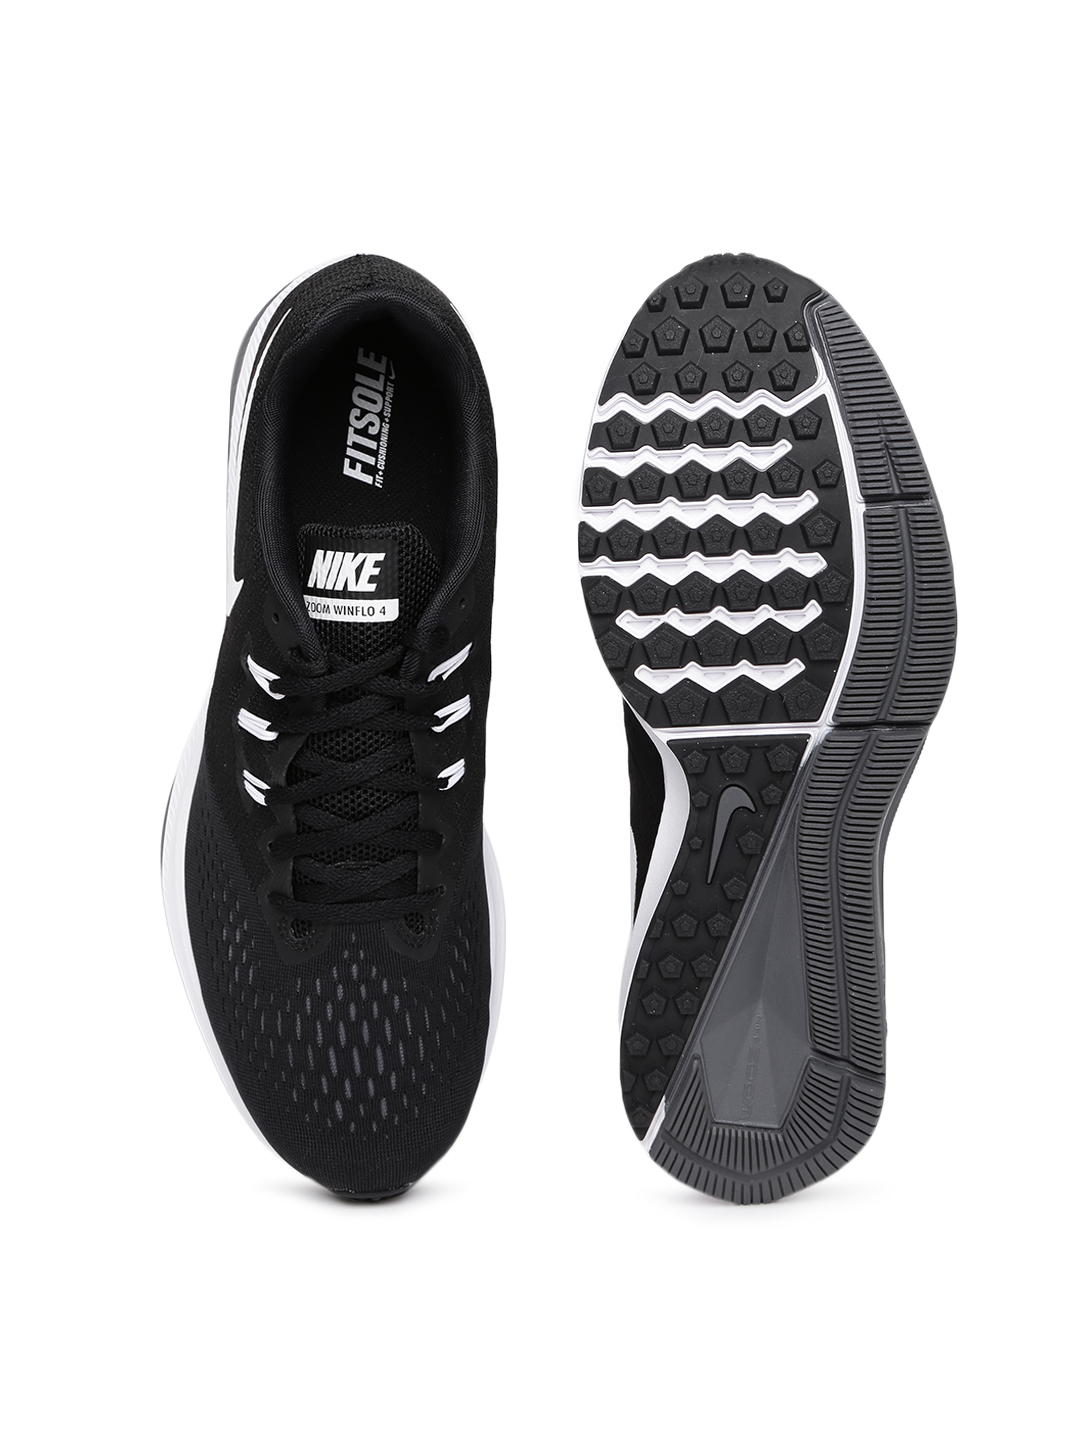 NIKE Men Black Zoom Winflo 4 Running Shoes image 1